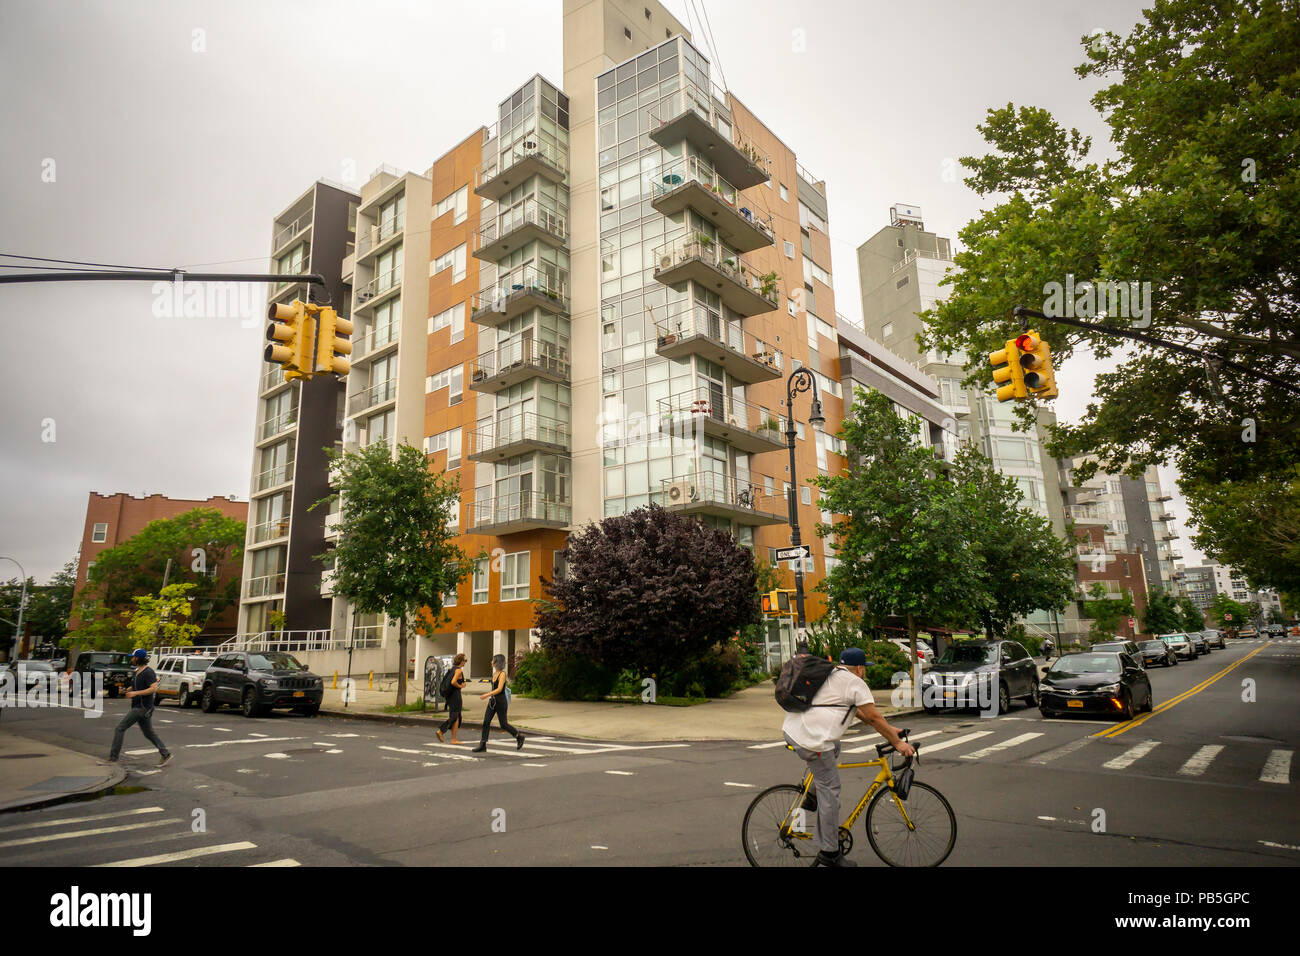 Buildings and development in the Greenpoint neighborhood of Brooklyn on Sunday, July 22, 2018.  Zoning changes in 2005 promoted residential development in areas previously designated industrial.(© Richard B. Levine) - Stock Image